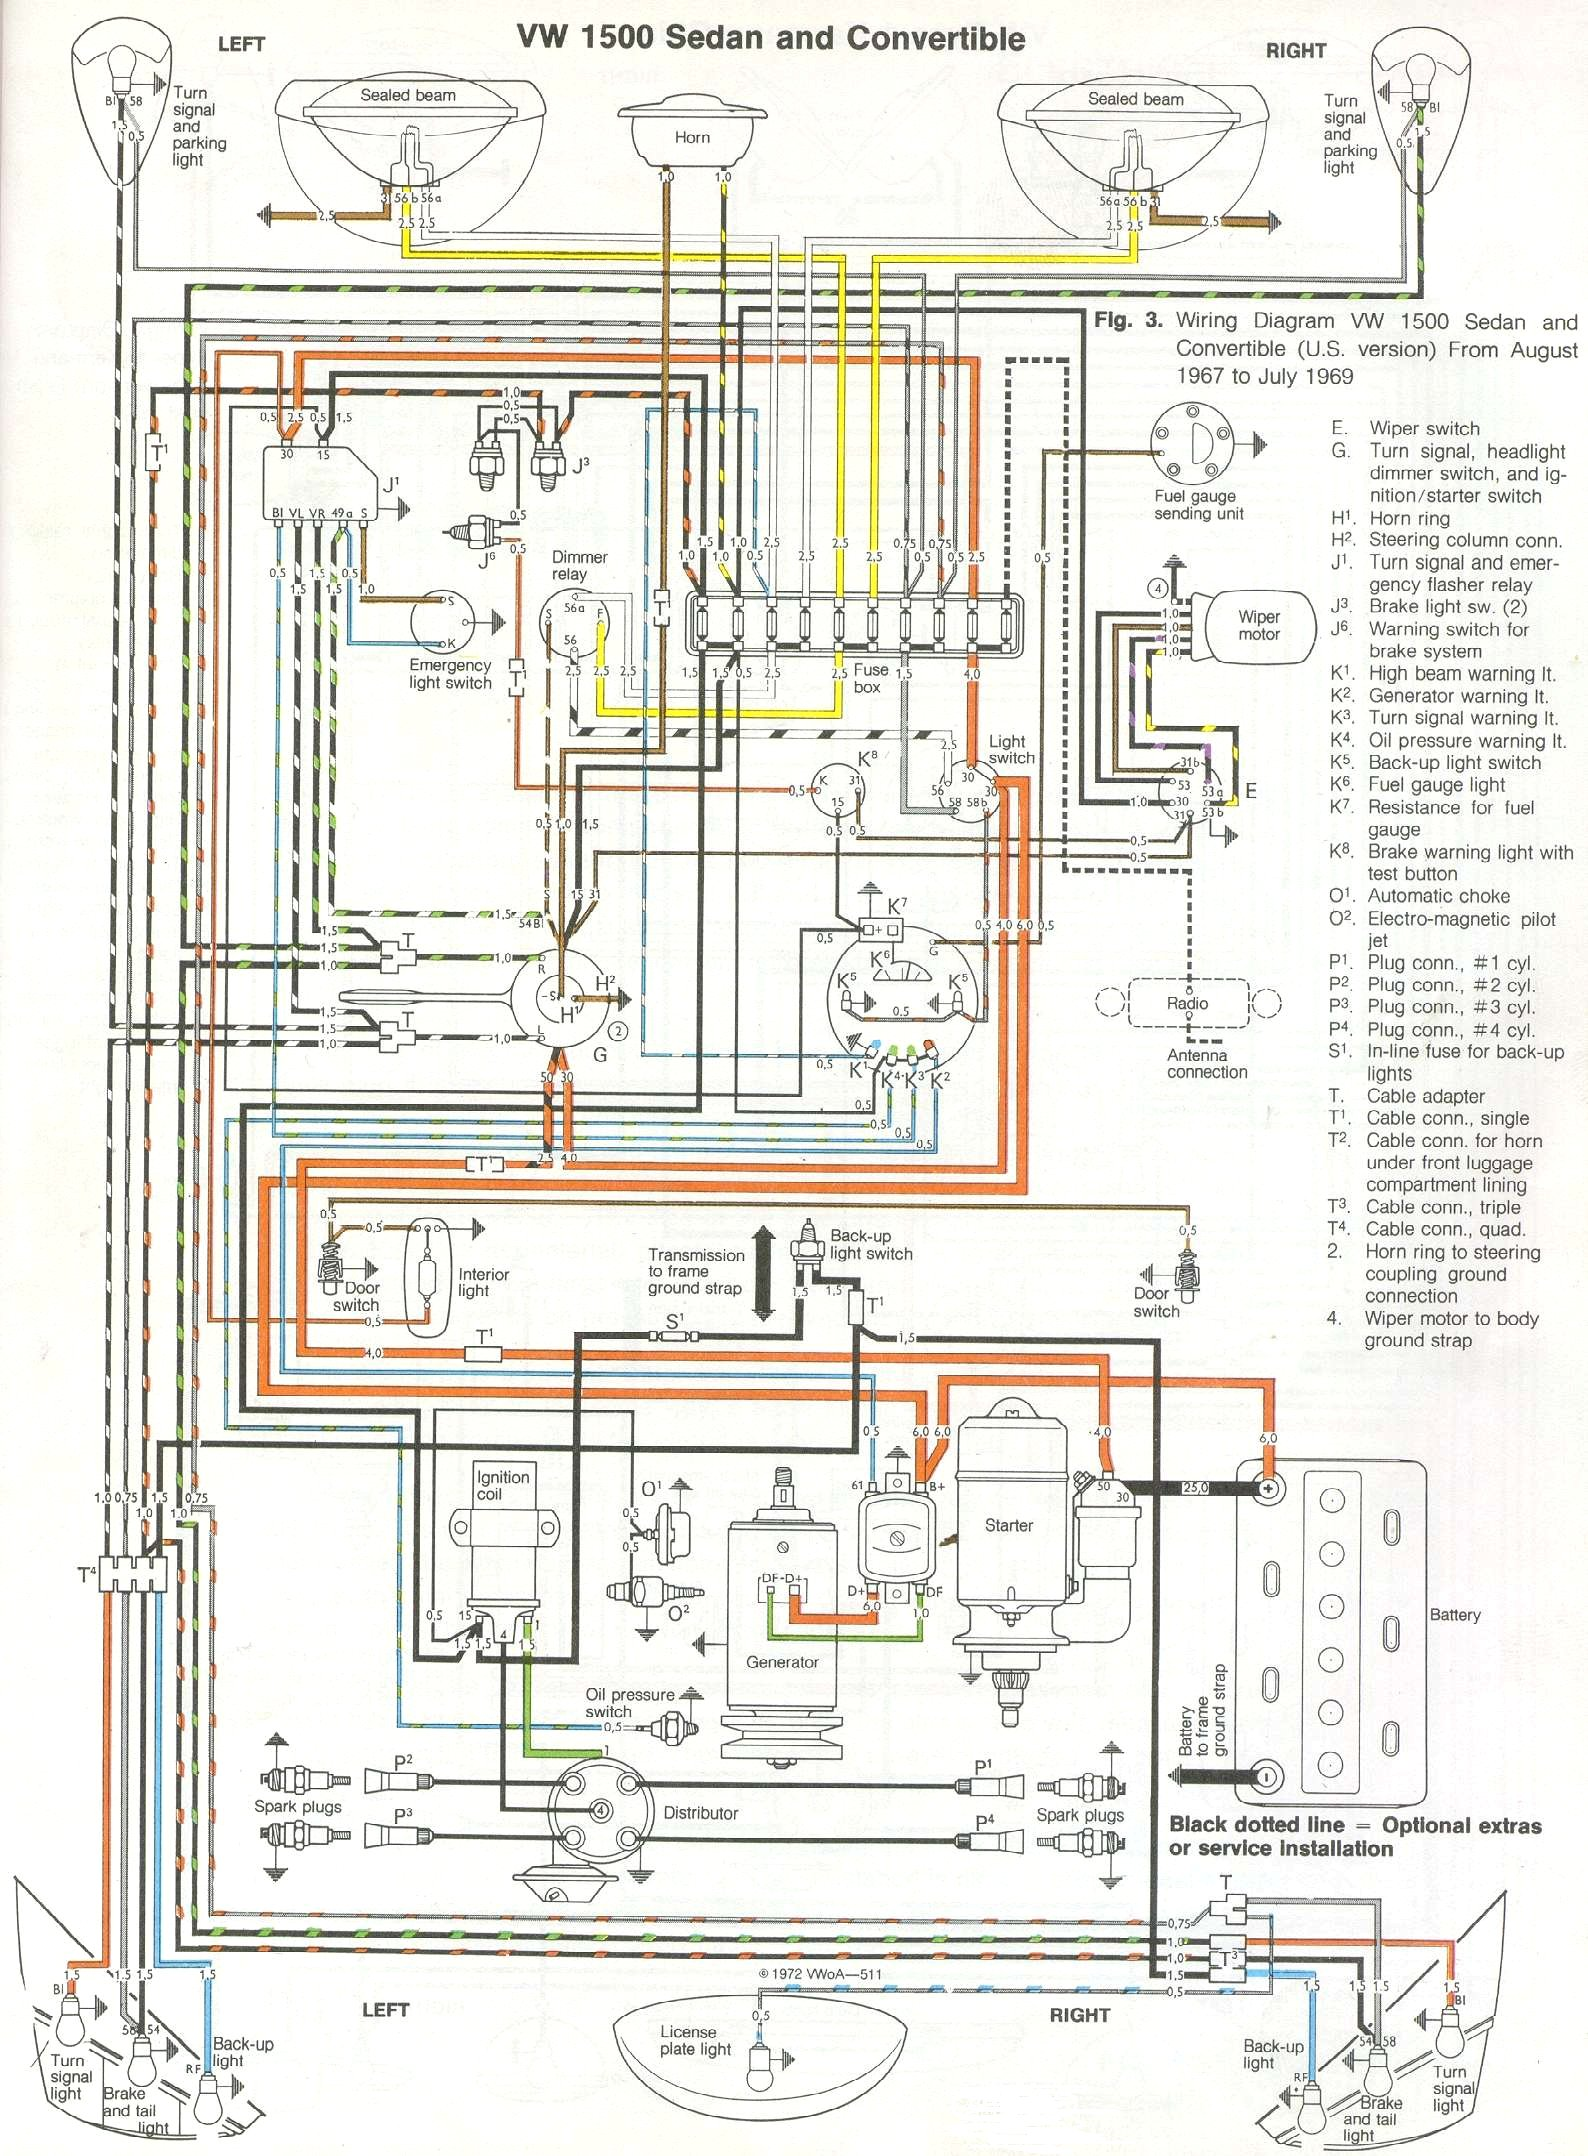 Fiat 500 Classic Wiring Diagram Will Be A Thing Cinquecento 1969 71 Beetle Thegoldenbug Com Microfiche Multiple Amplifier